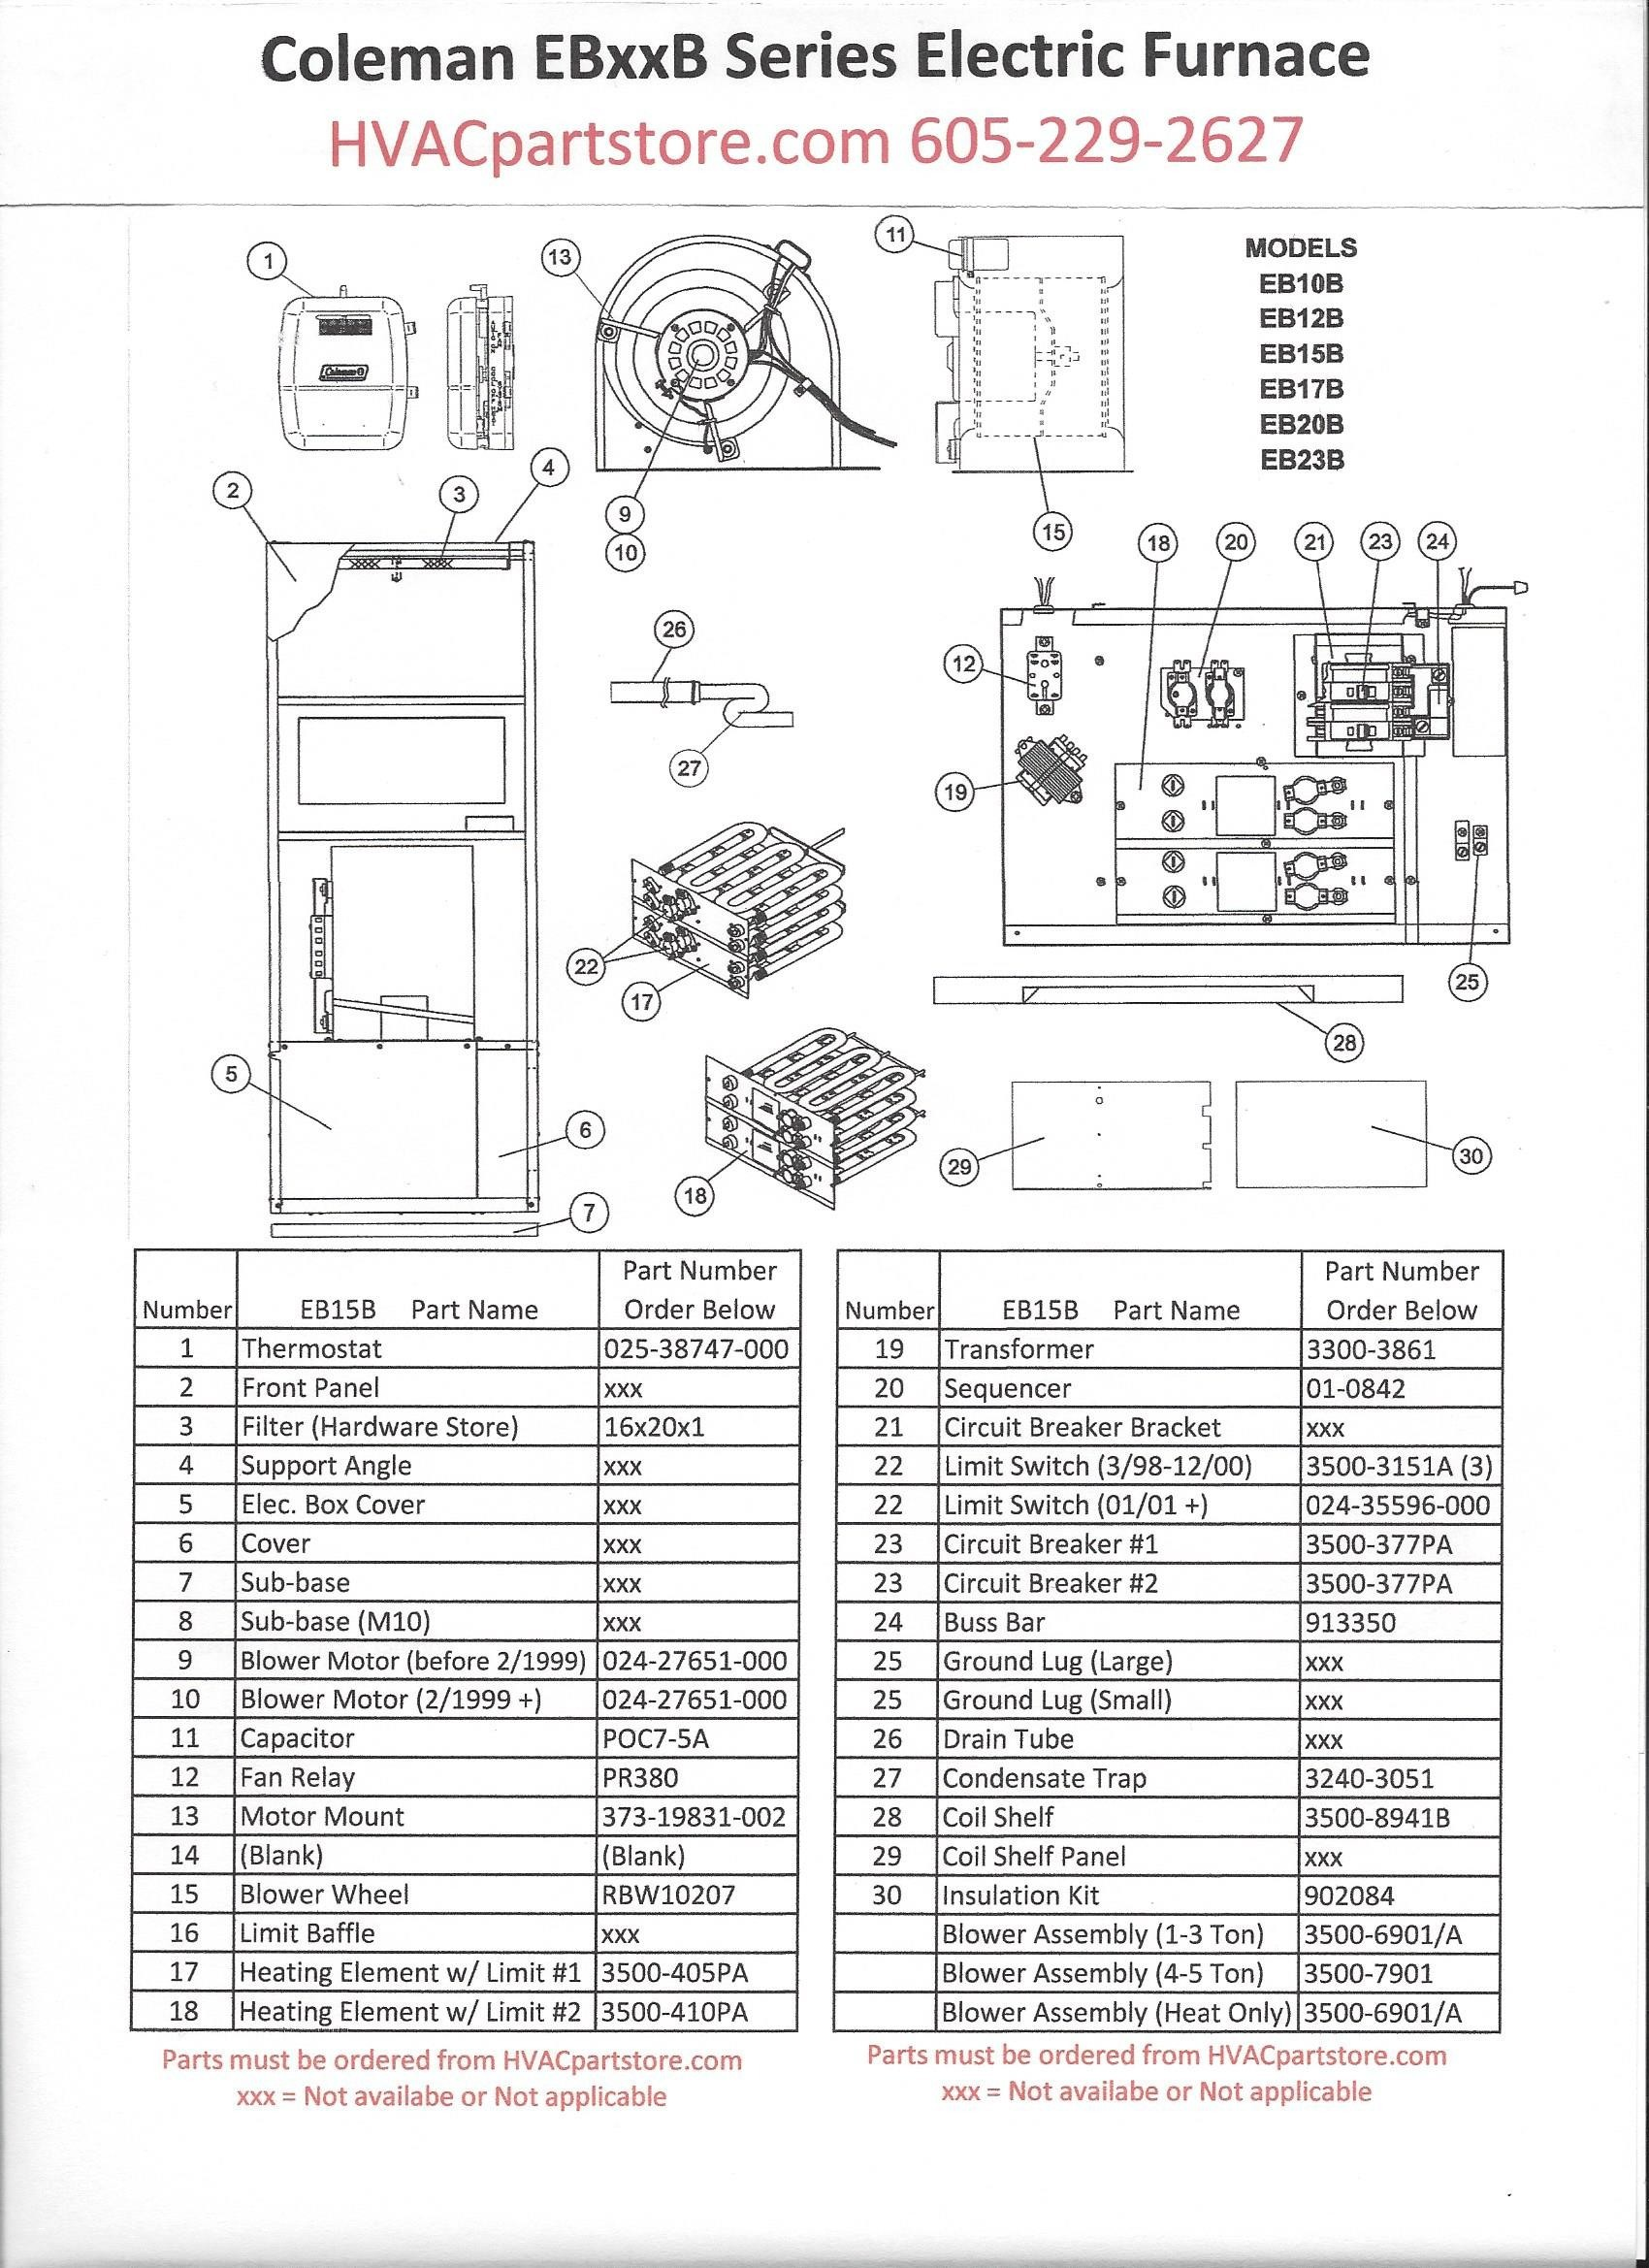 Cat5e Wire Diagram New Suburban Rv Furnace Wiring Diagram Wiring Diagram